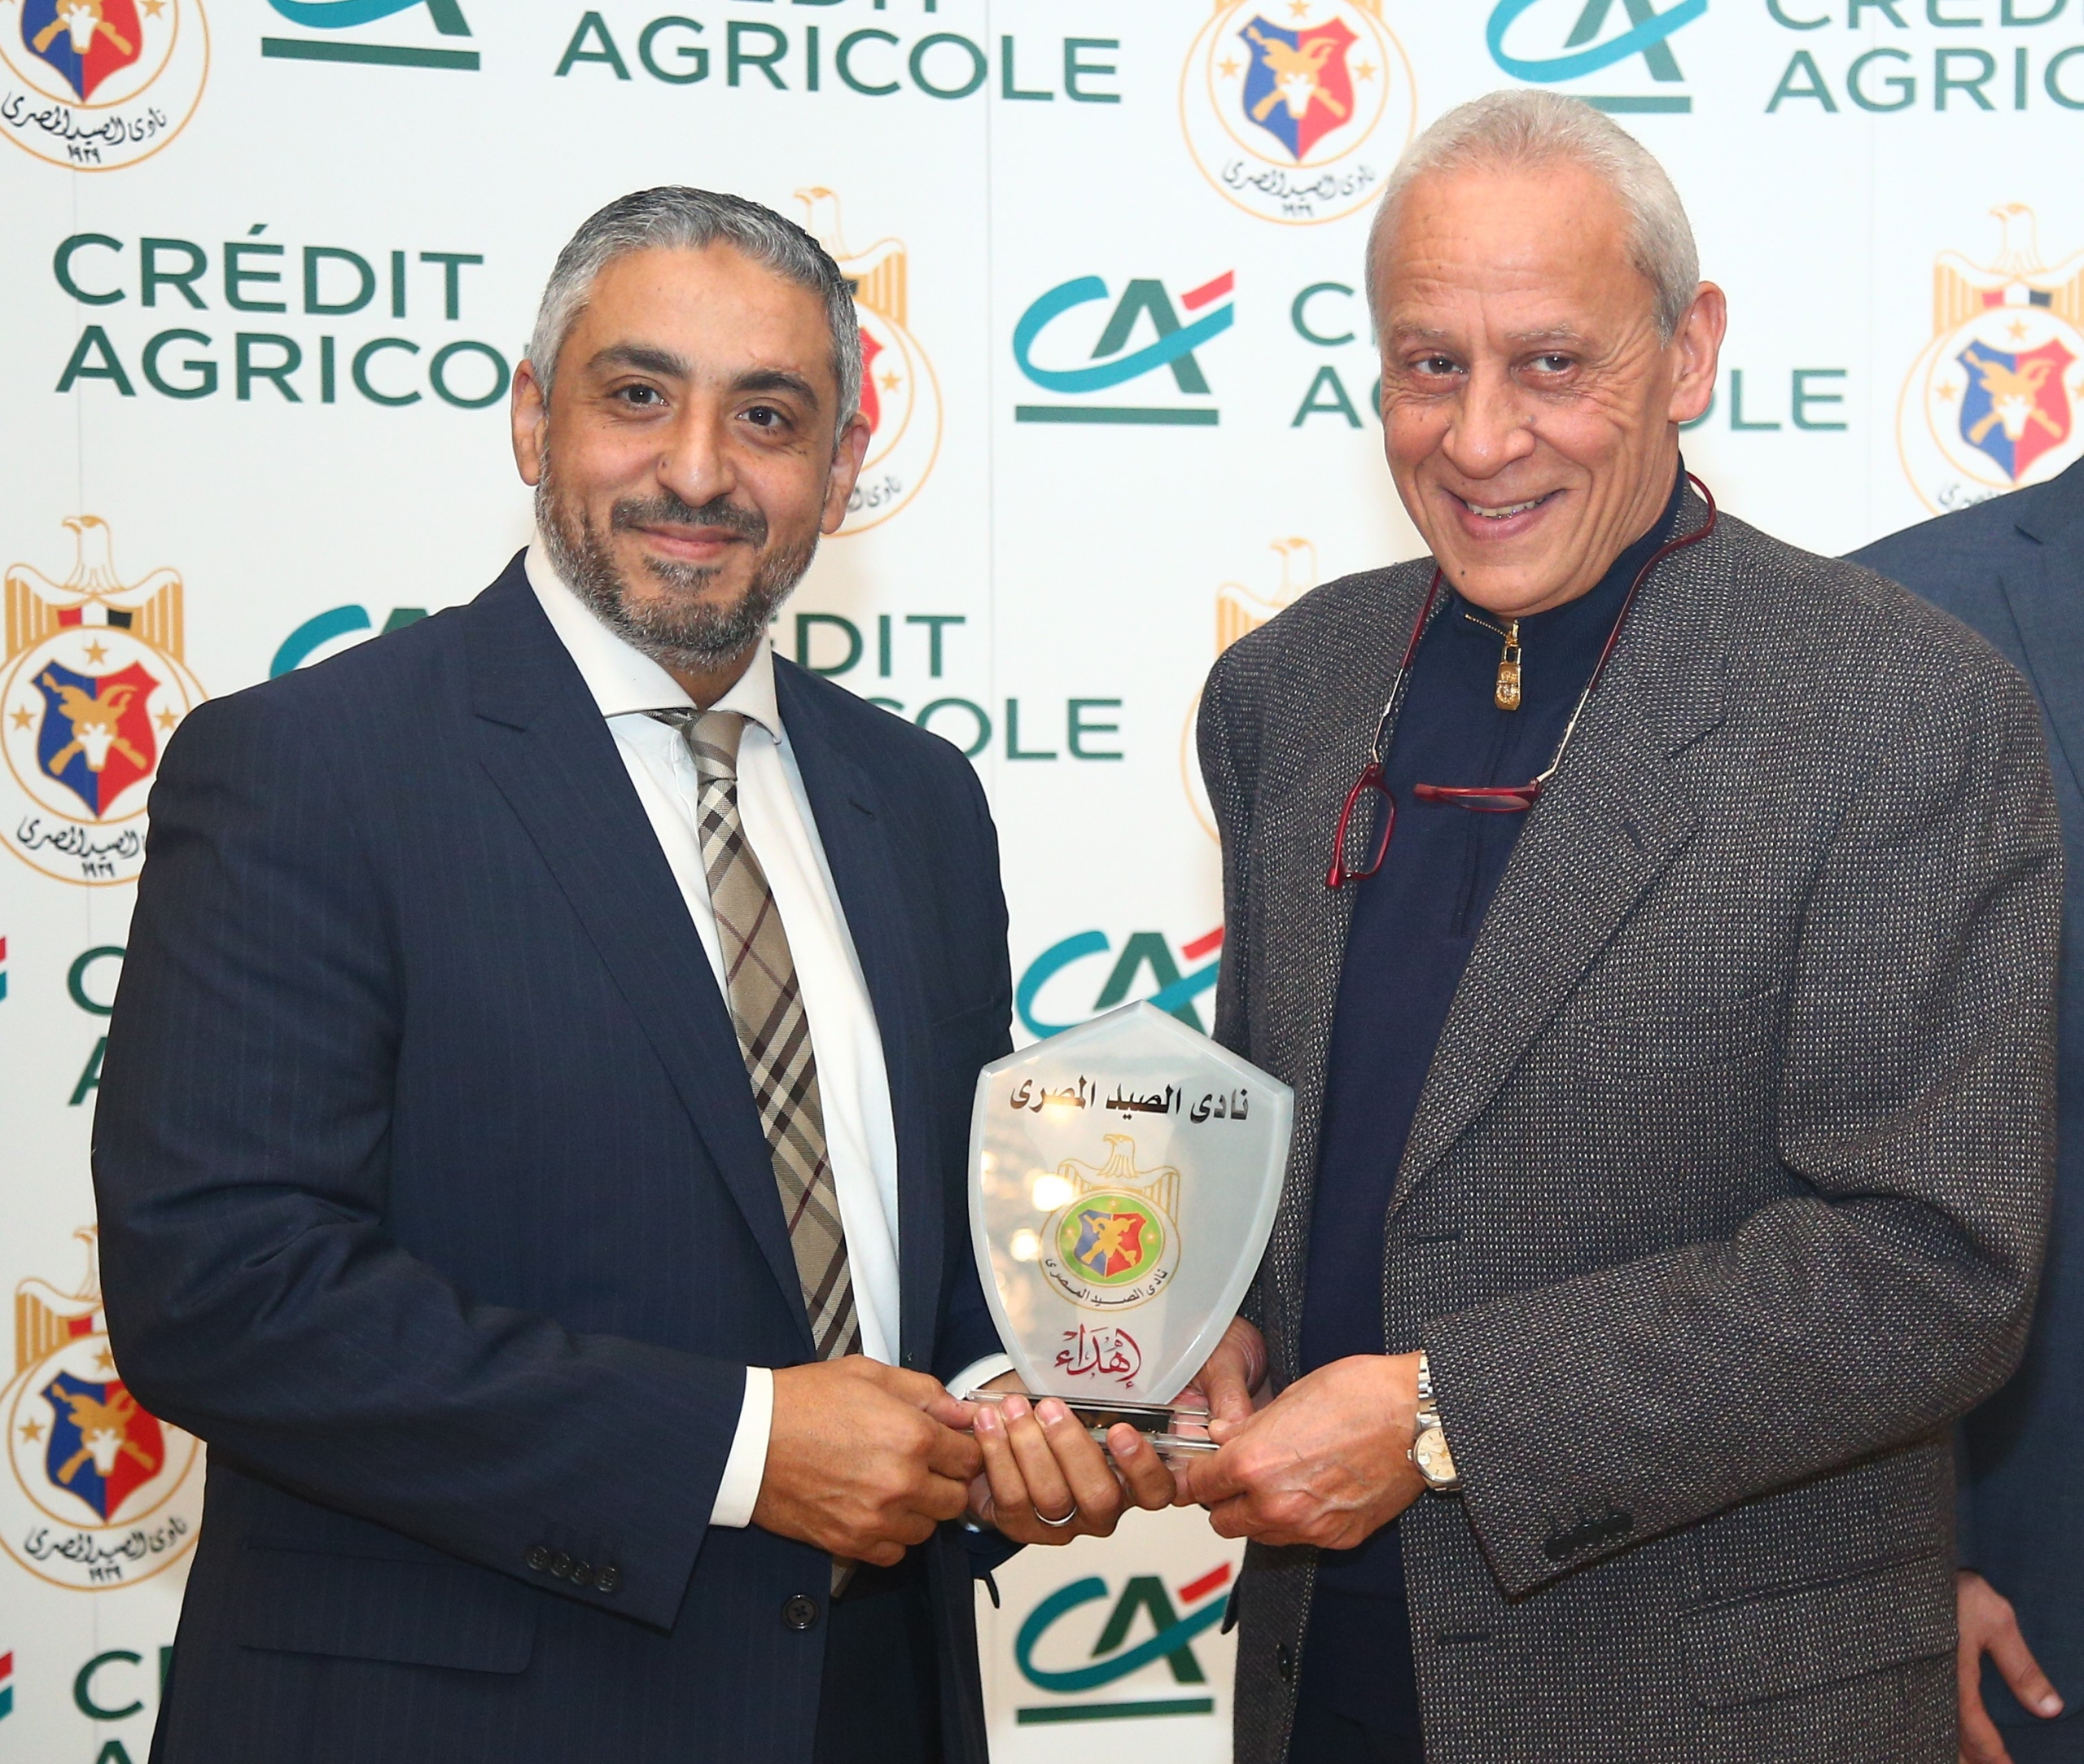 Crédit Agricole Egypt extends cooperation with the Egyptian Shooting Club to convert membership cards into payment cards